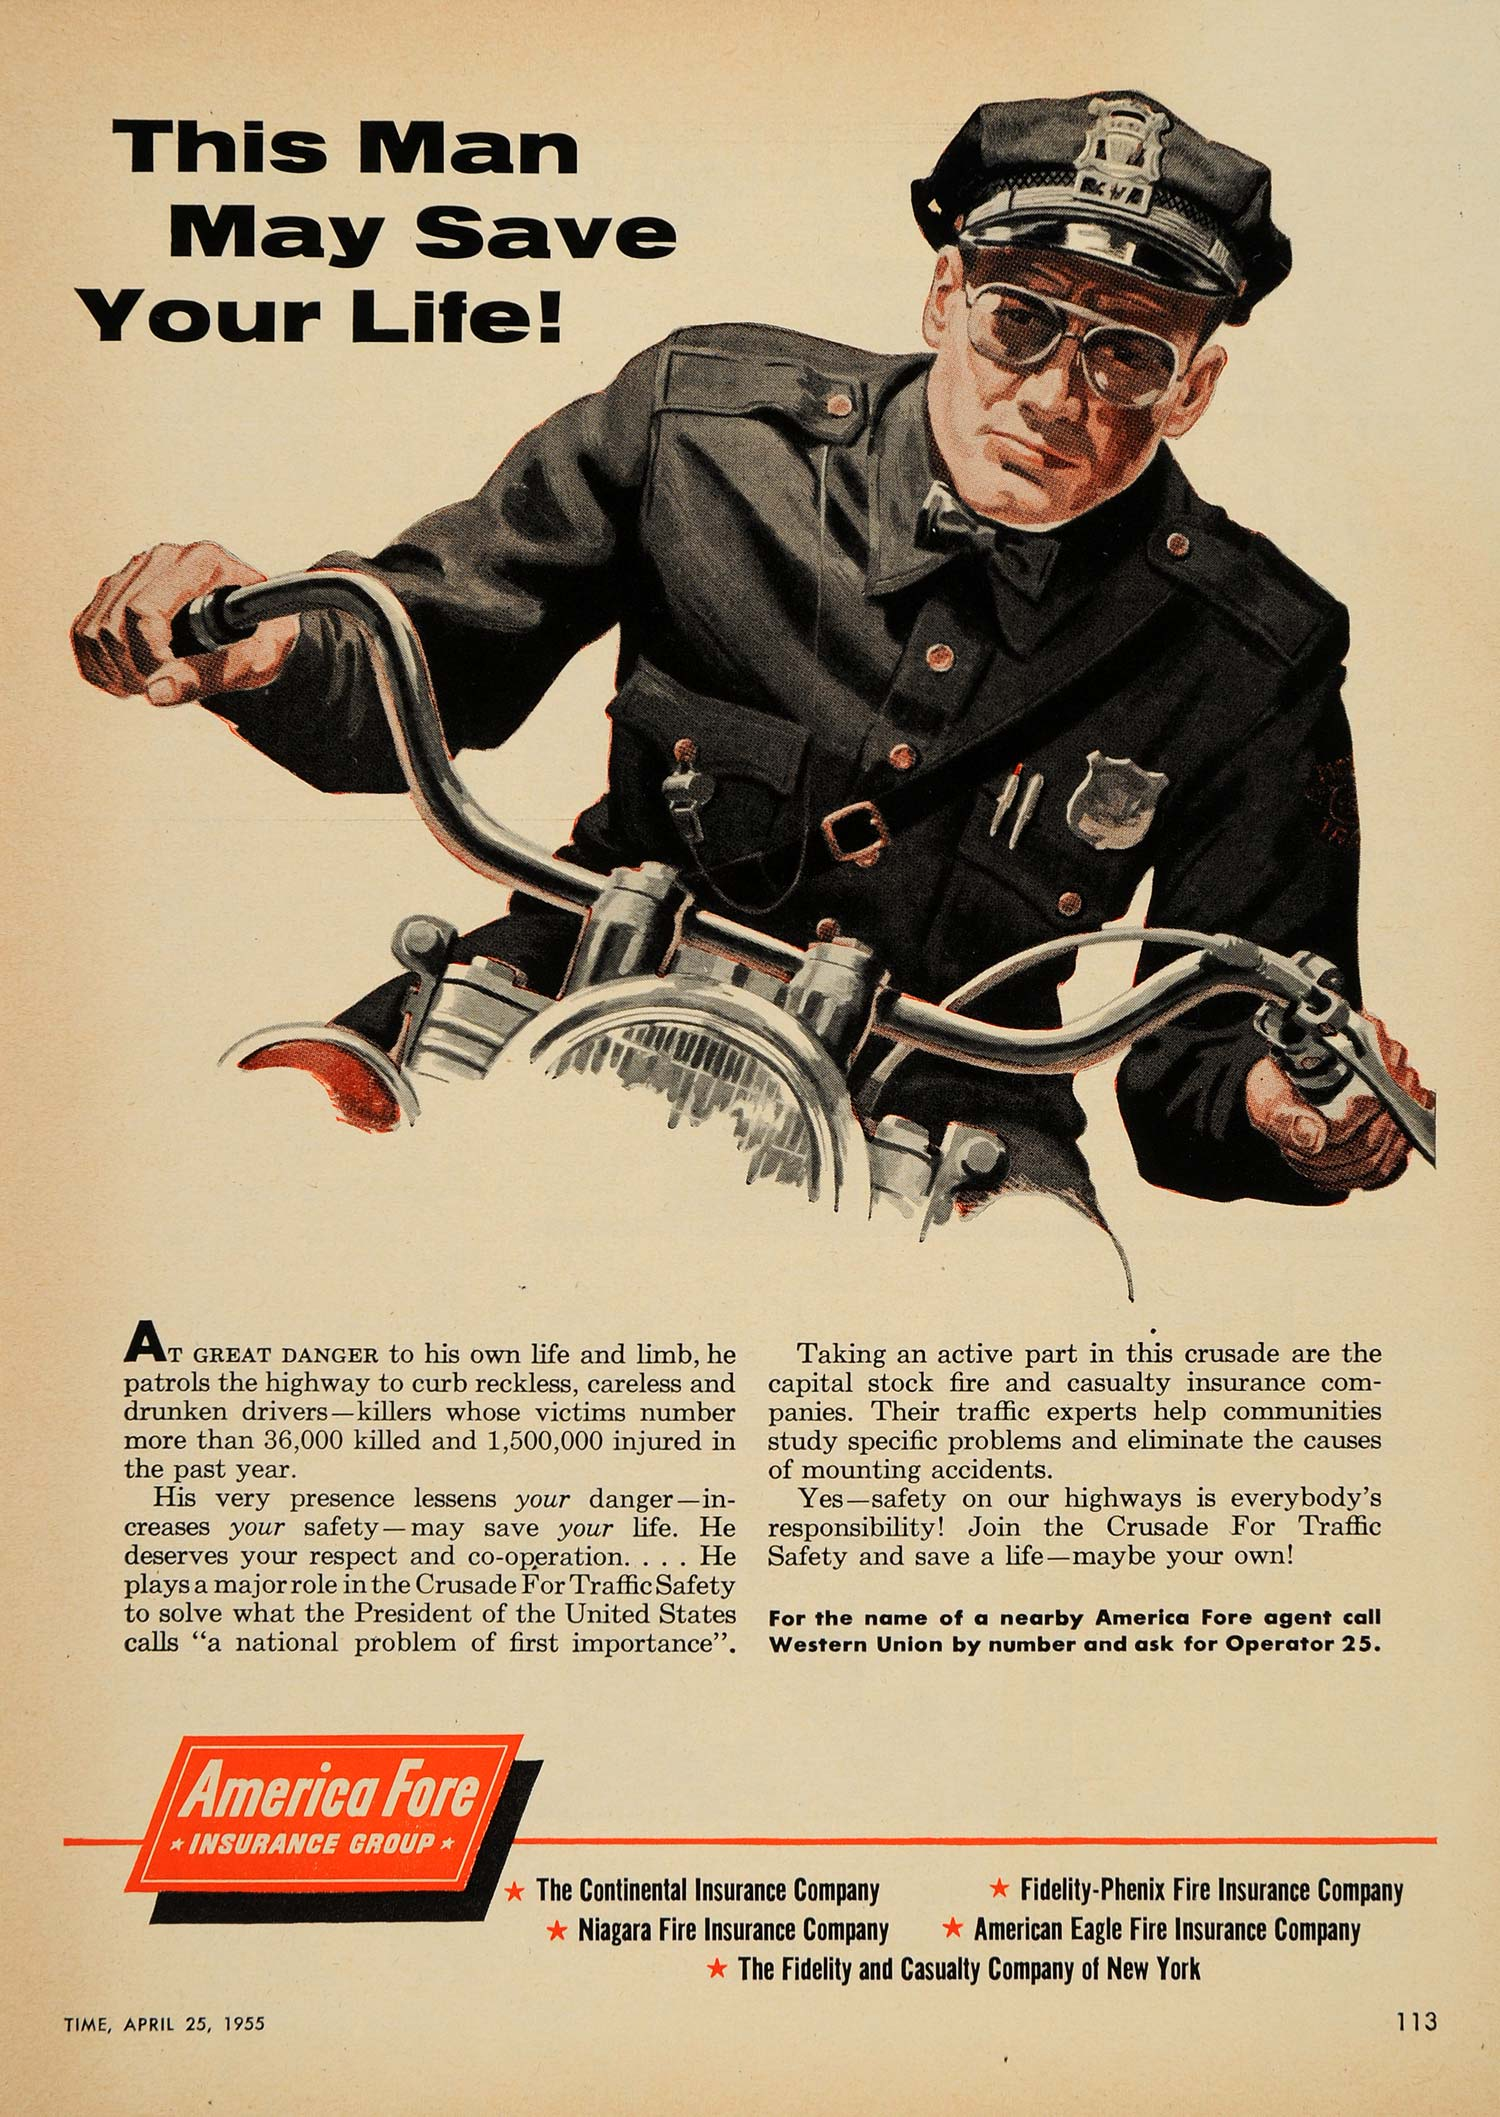 1955 Ad America Fore Insurance Group Patrol Motorcycle - ORIGINAL TM3